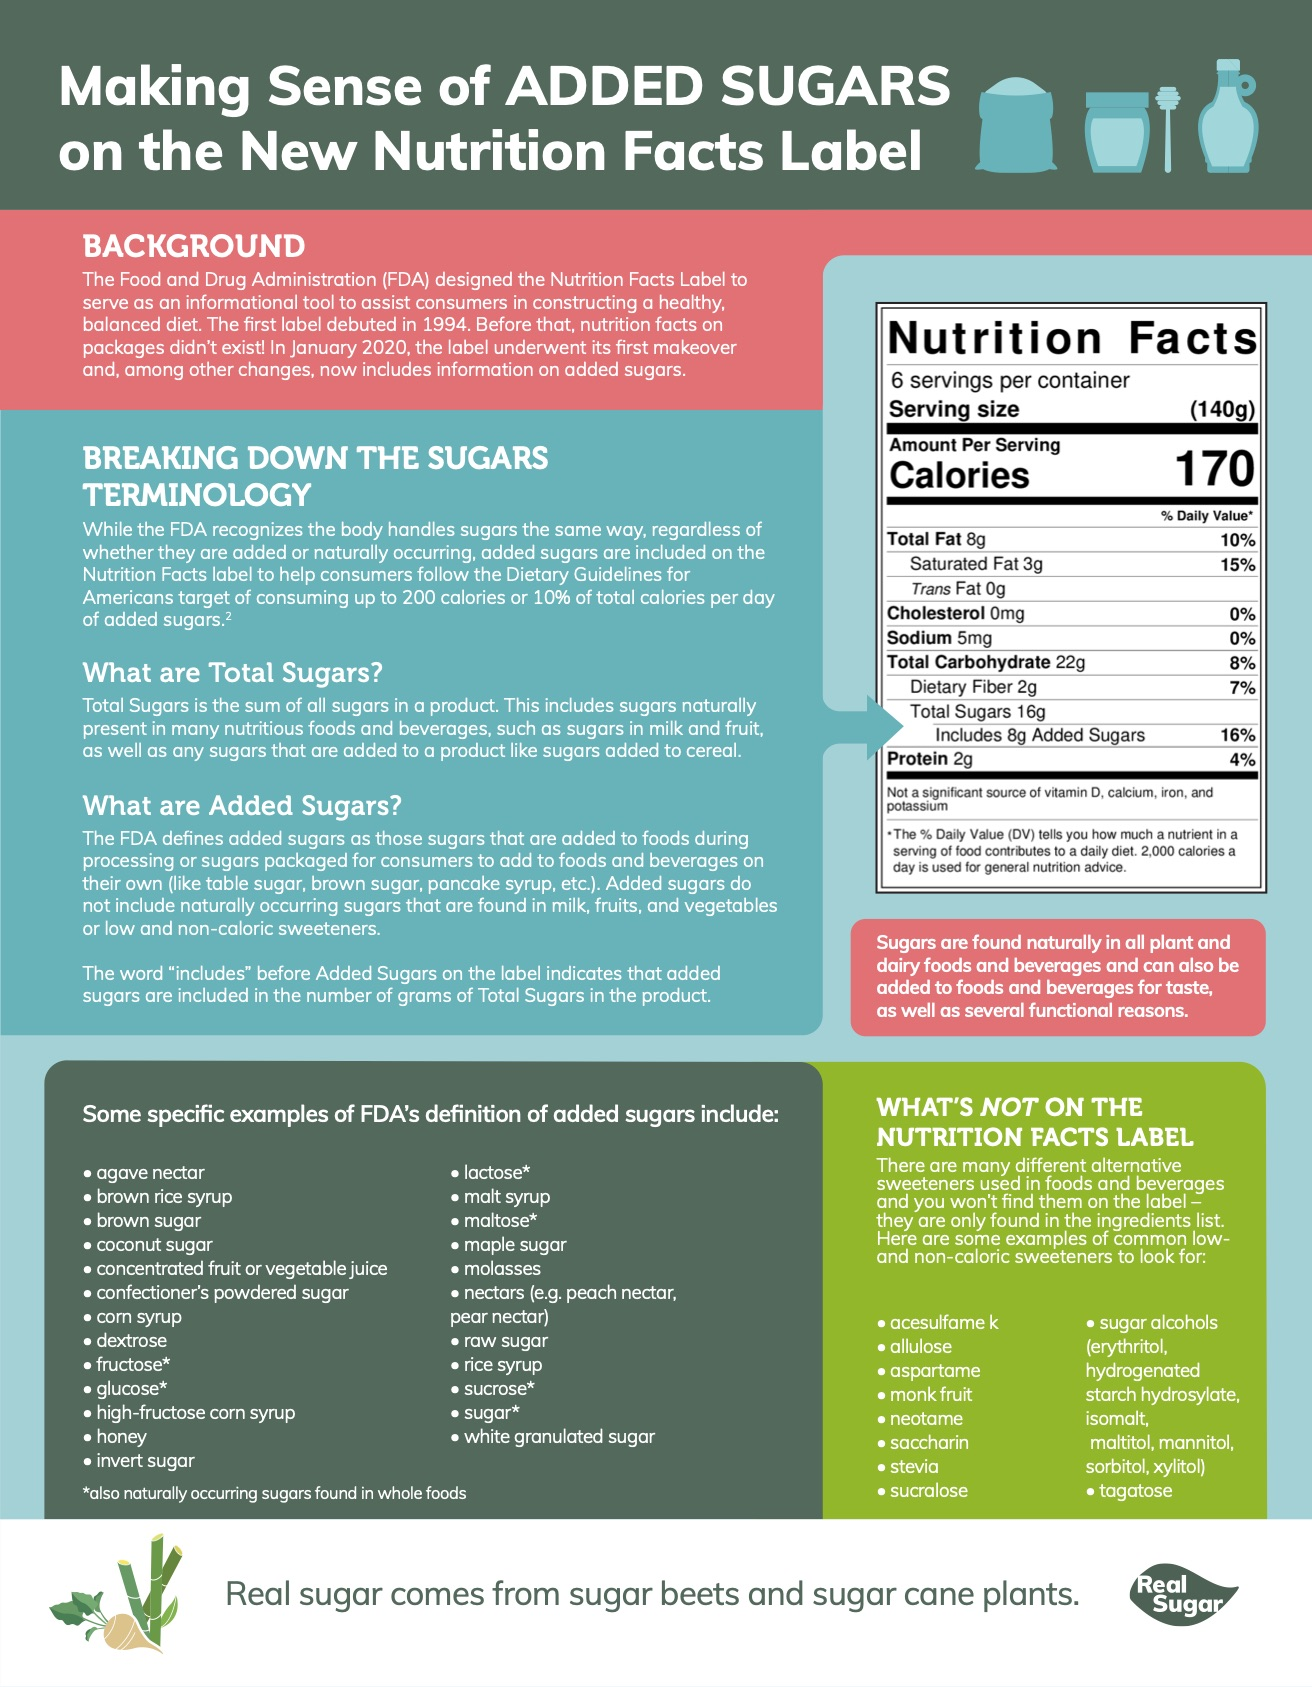 Making Sense of ADDED SUGARS on the New Nutrition Facts Label